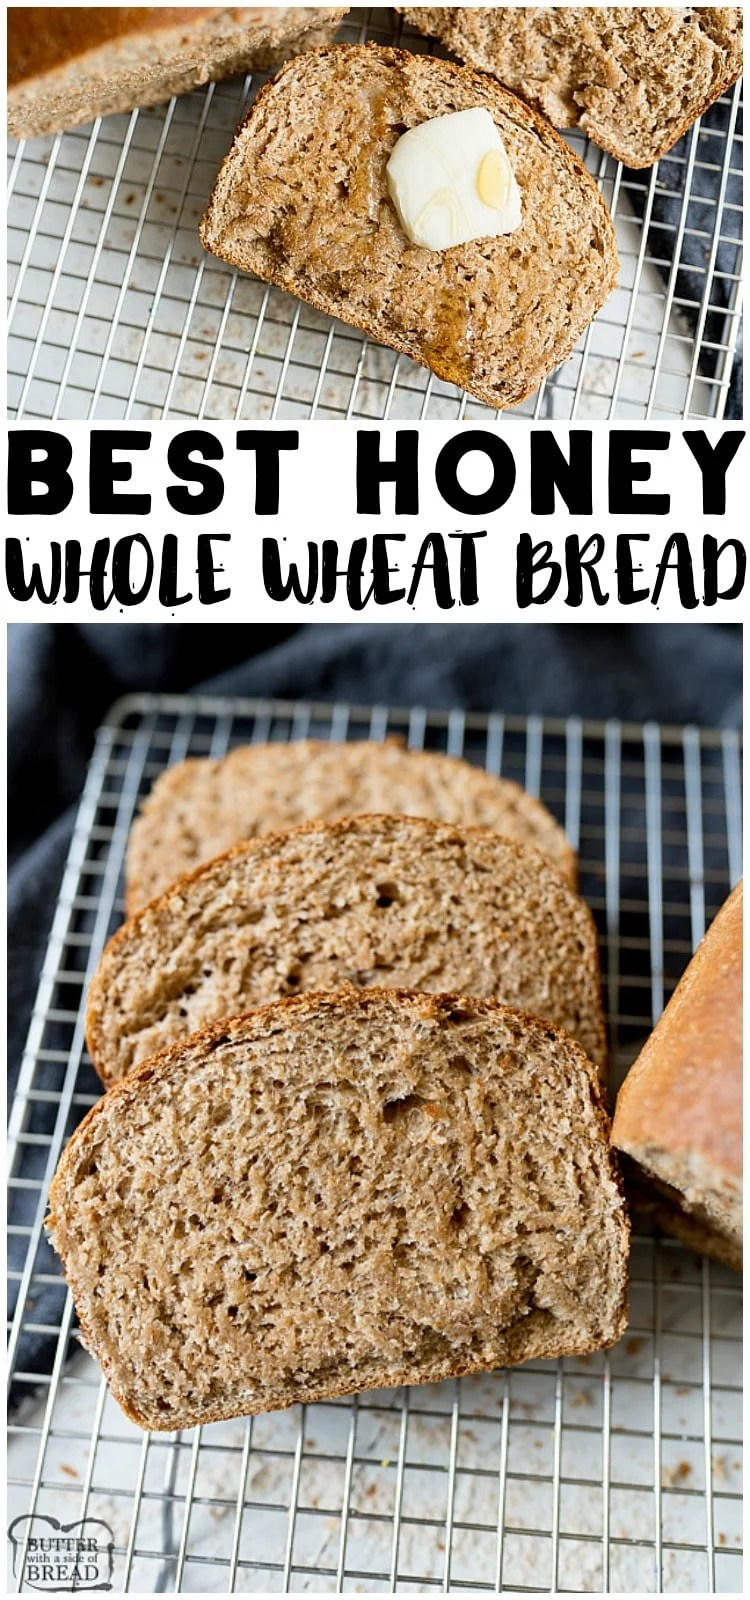 Honey Wheat Bread Recipe is a super simple way to use everyday ingredients to create delicious, hearty whole wheat bread. This Wheat Bread Recipe is perfect for beginner bread makers.